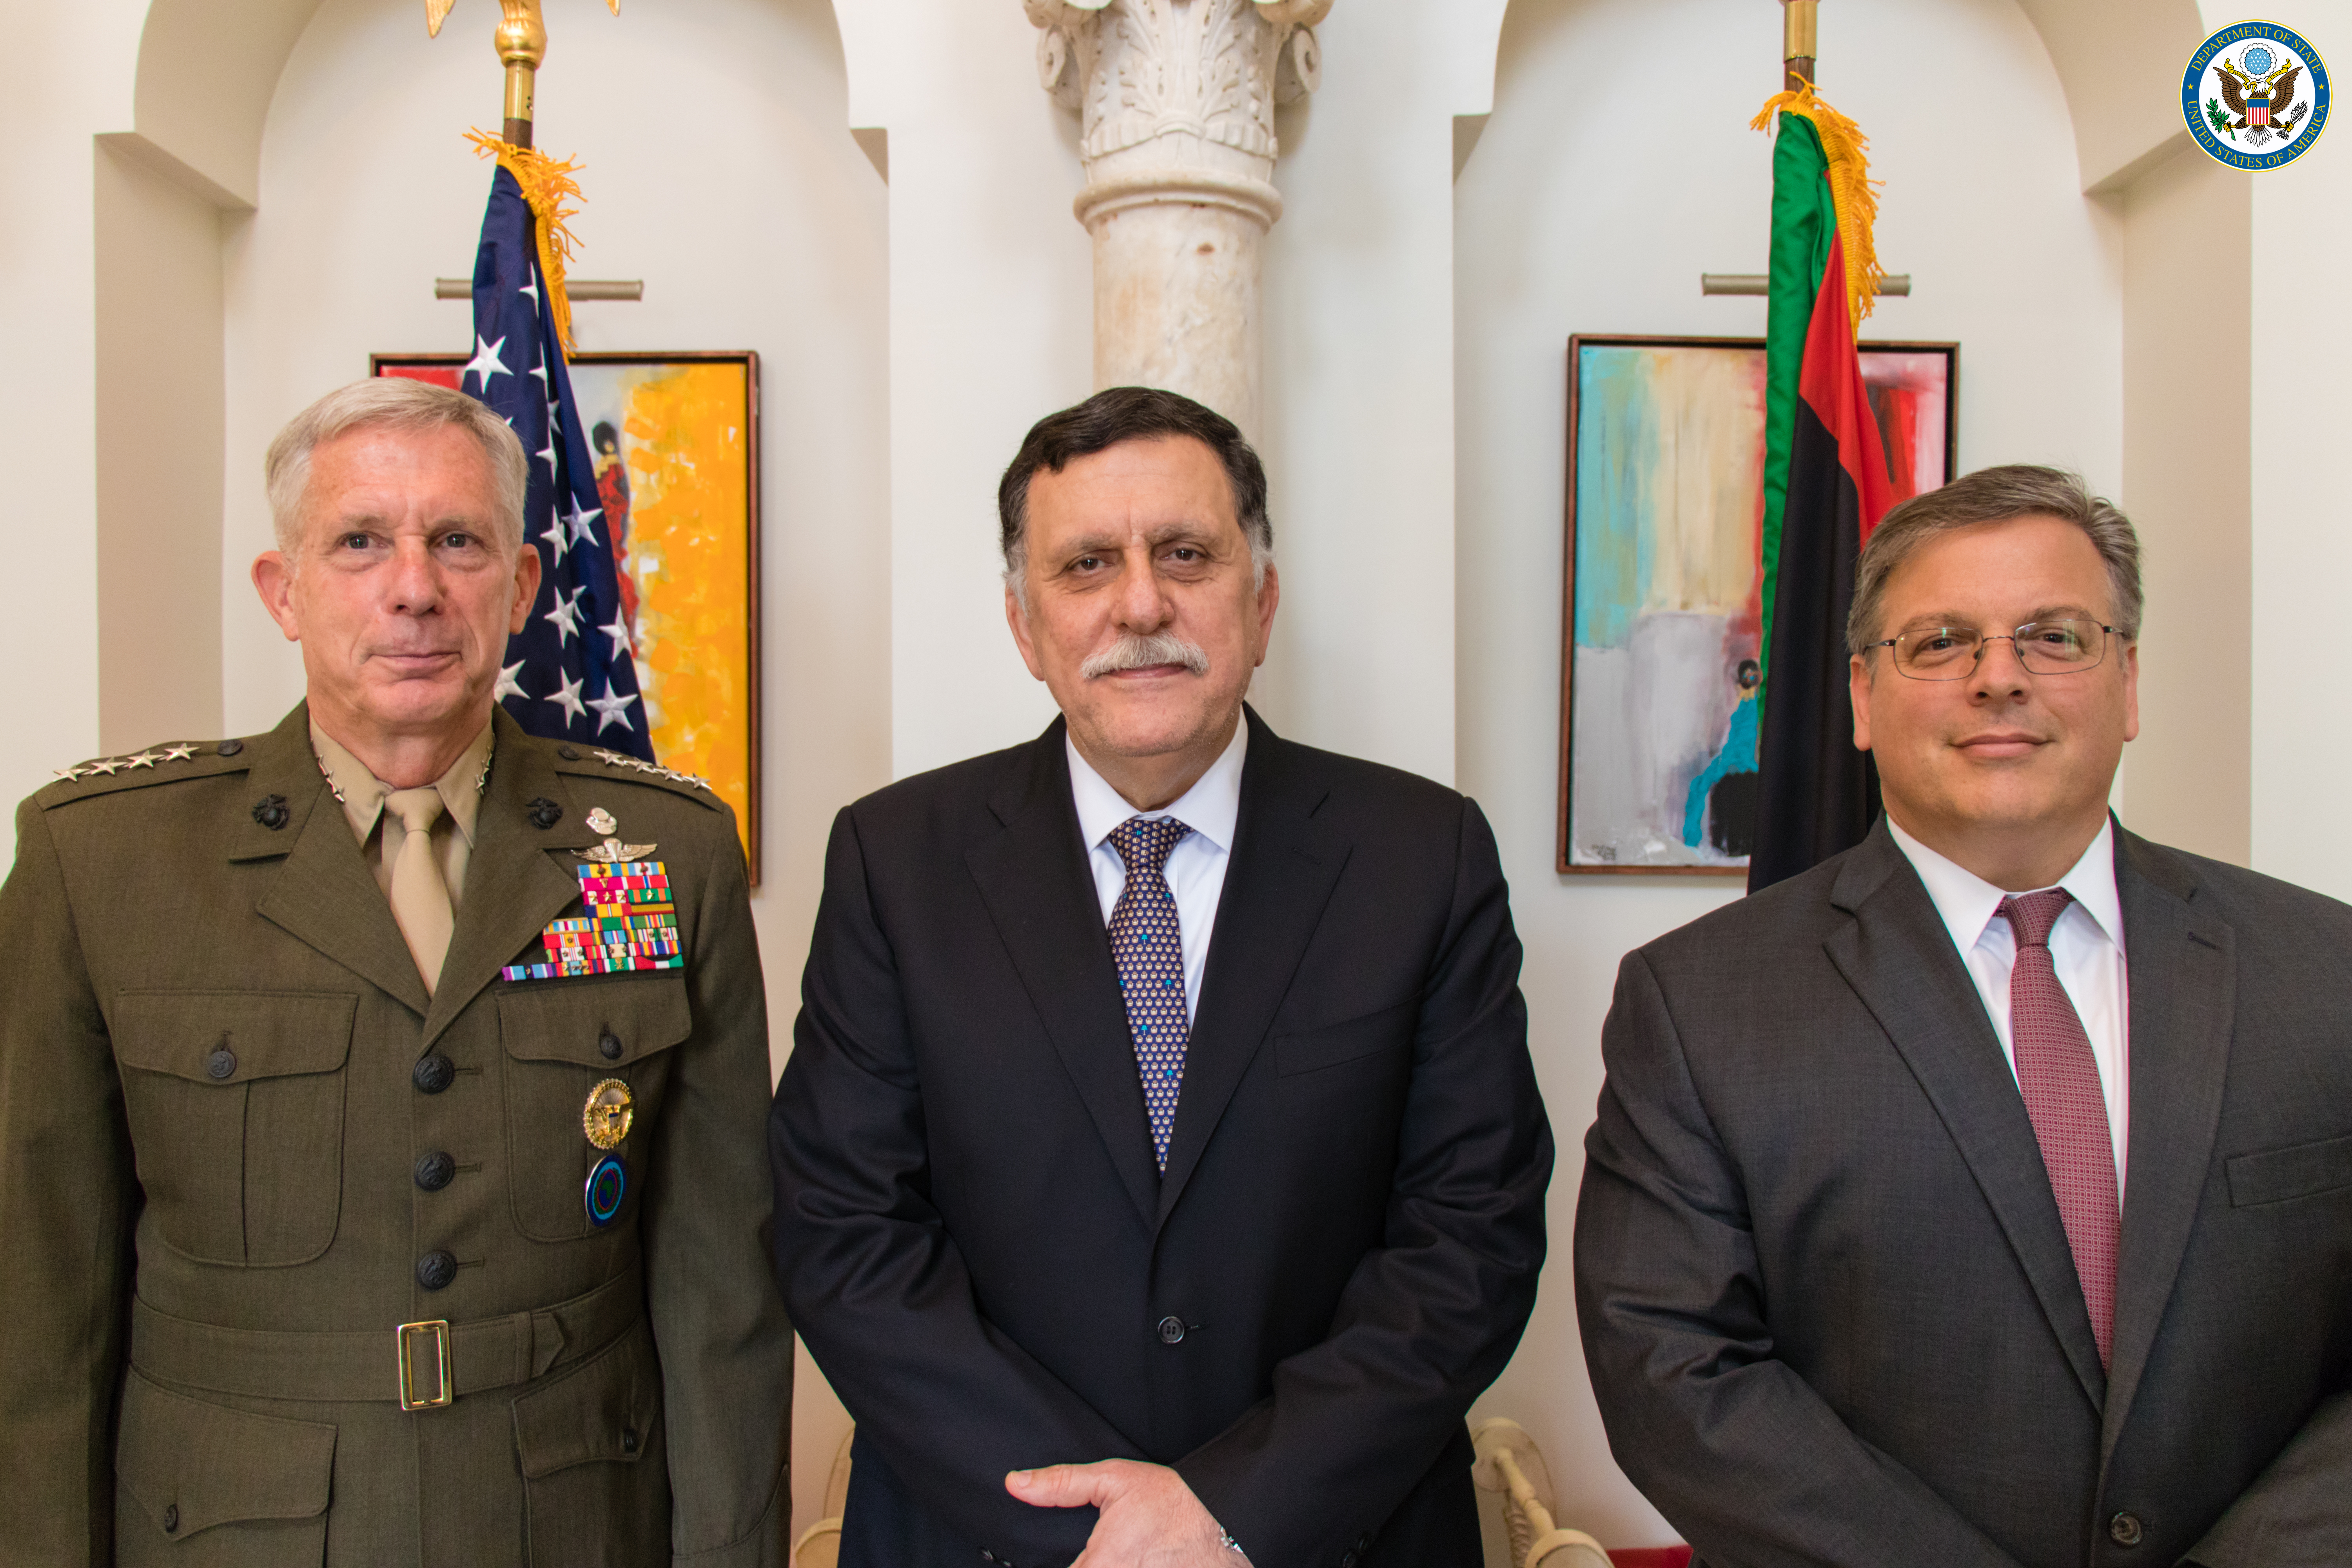 From Left to right: U.S. Marine Corps Gen. Thomas Waldhauser, commander, Libyan Prime Minister Fayez al-Sarraj, and Chargé d'Affaires of the U.S. Department of State's Libya External Office Donald Blome.